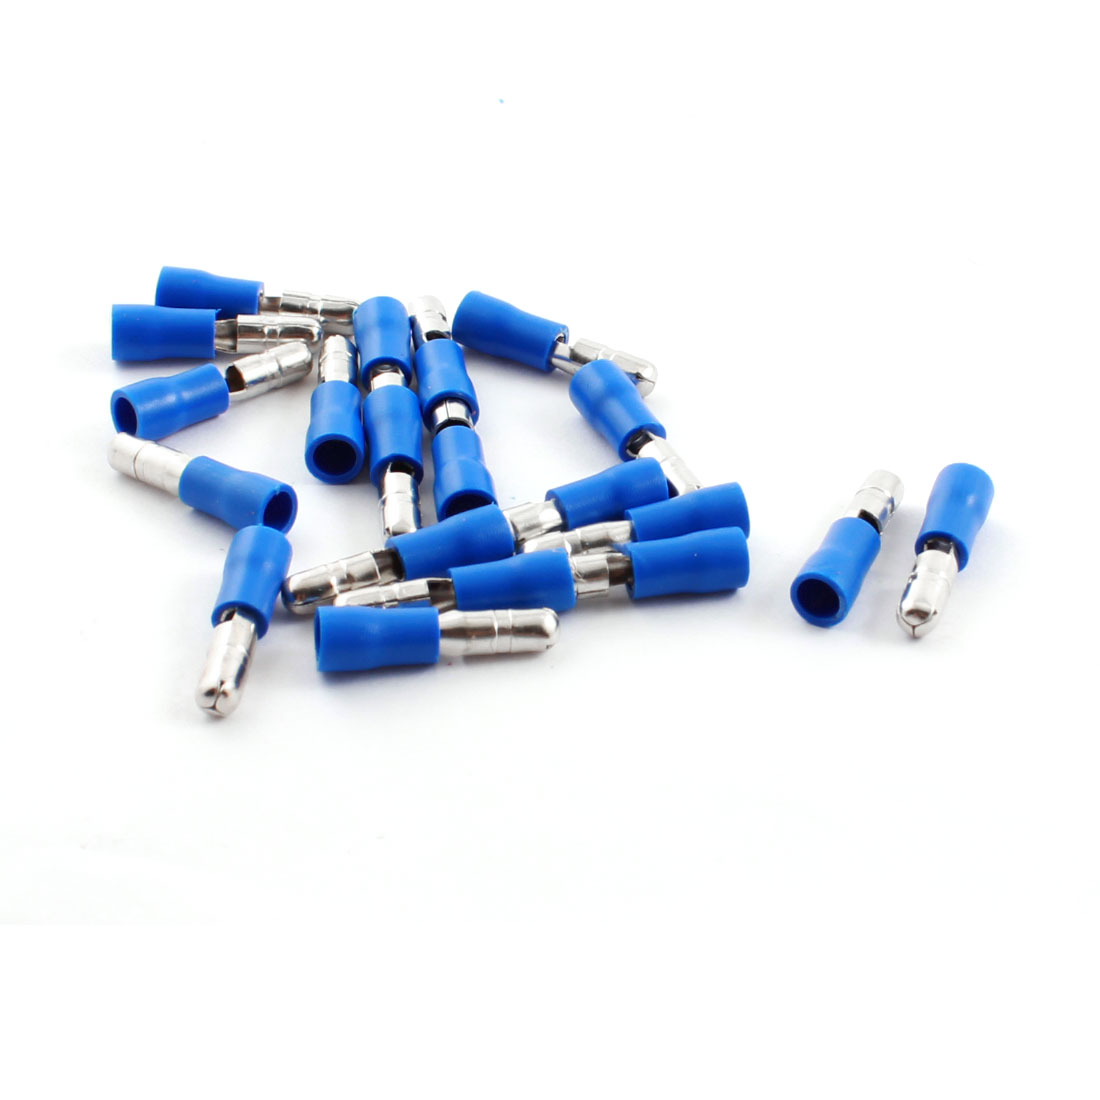 20 Pcs FRD2-156 15A Blue Full Insulated Male Bullet Terminal Cable Connector for 16-14AWG Wire